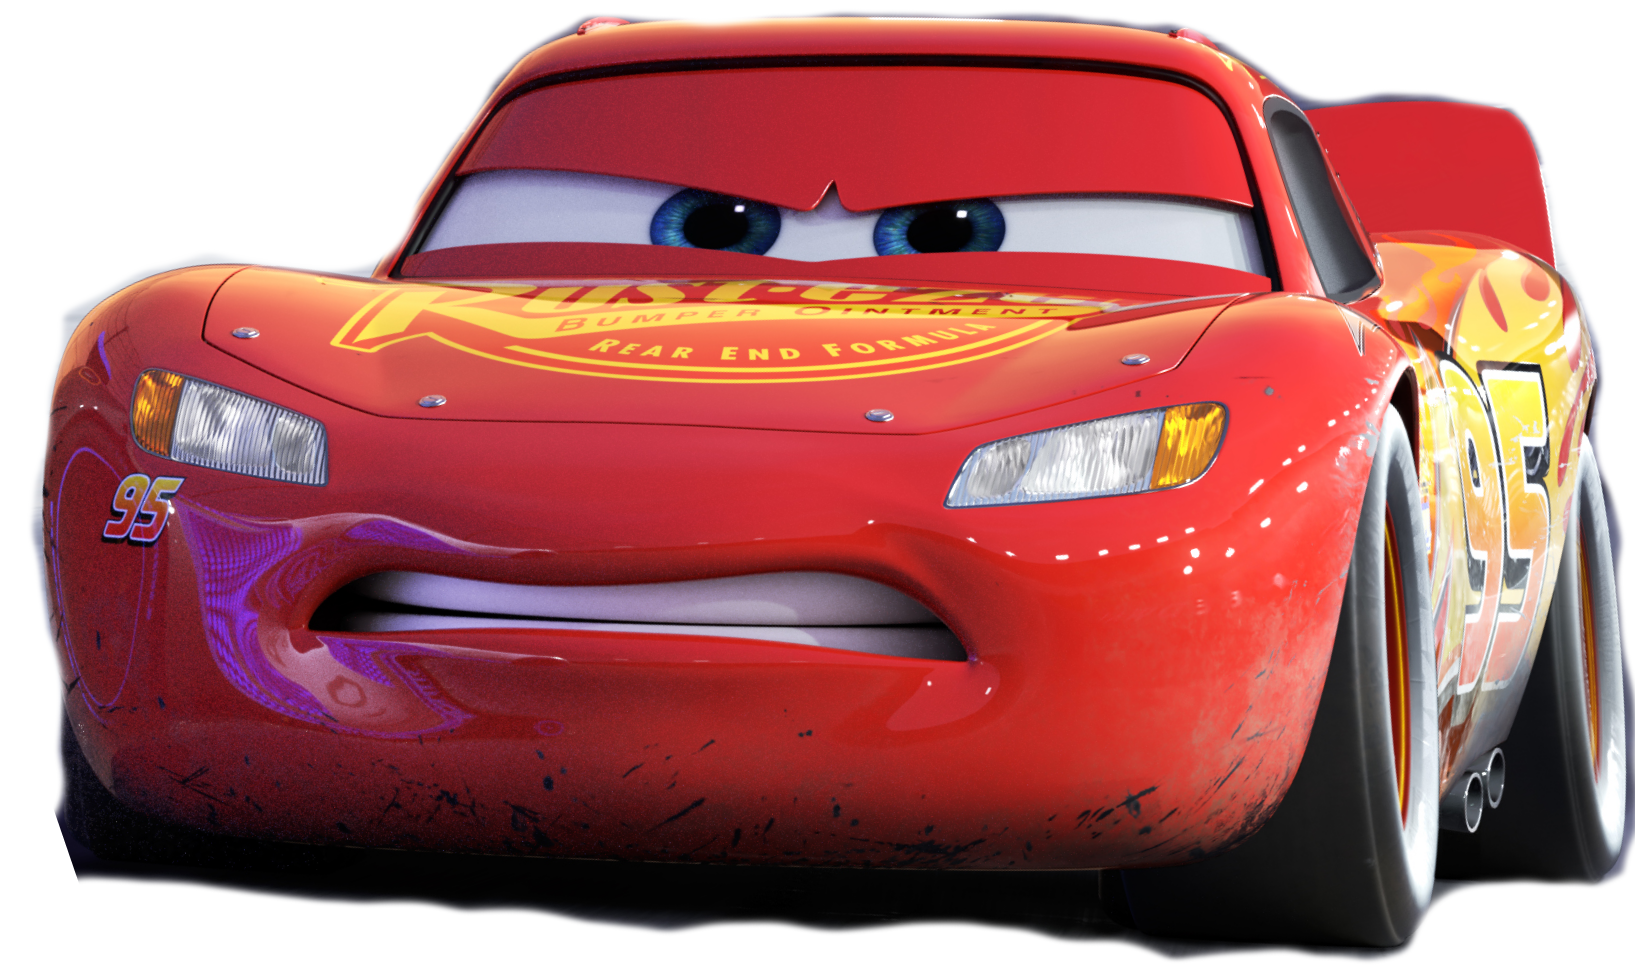 image lightning mcqueen cars 3 pixar wiki fandom powered by wikia. Black Bedroom Furniture Sets. Home Design Ideas